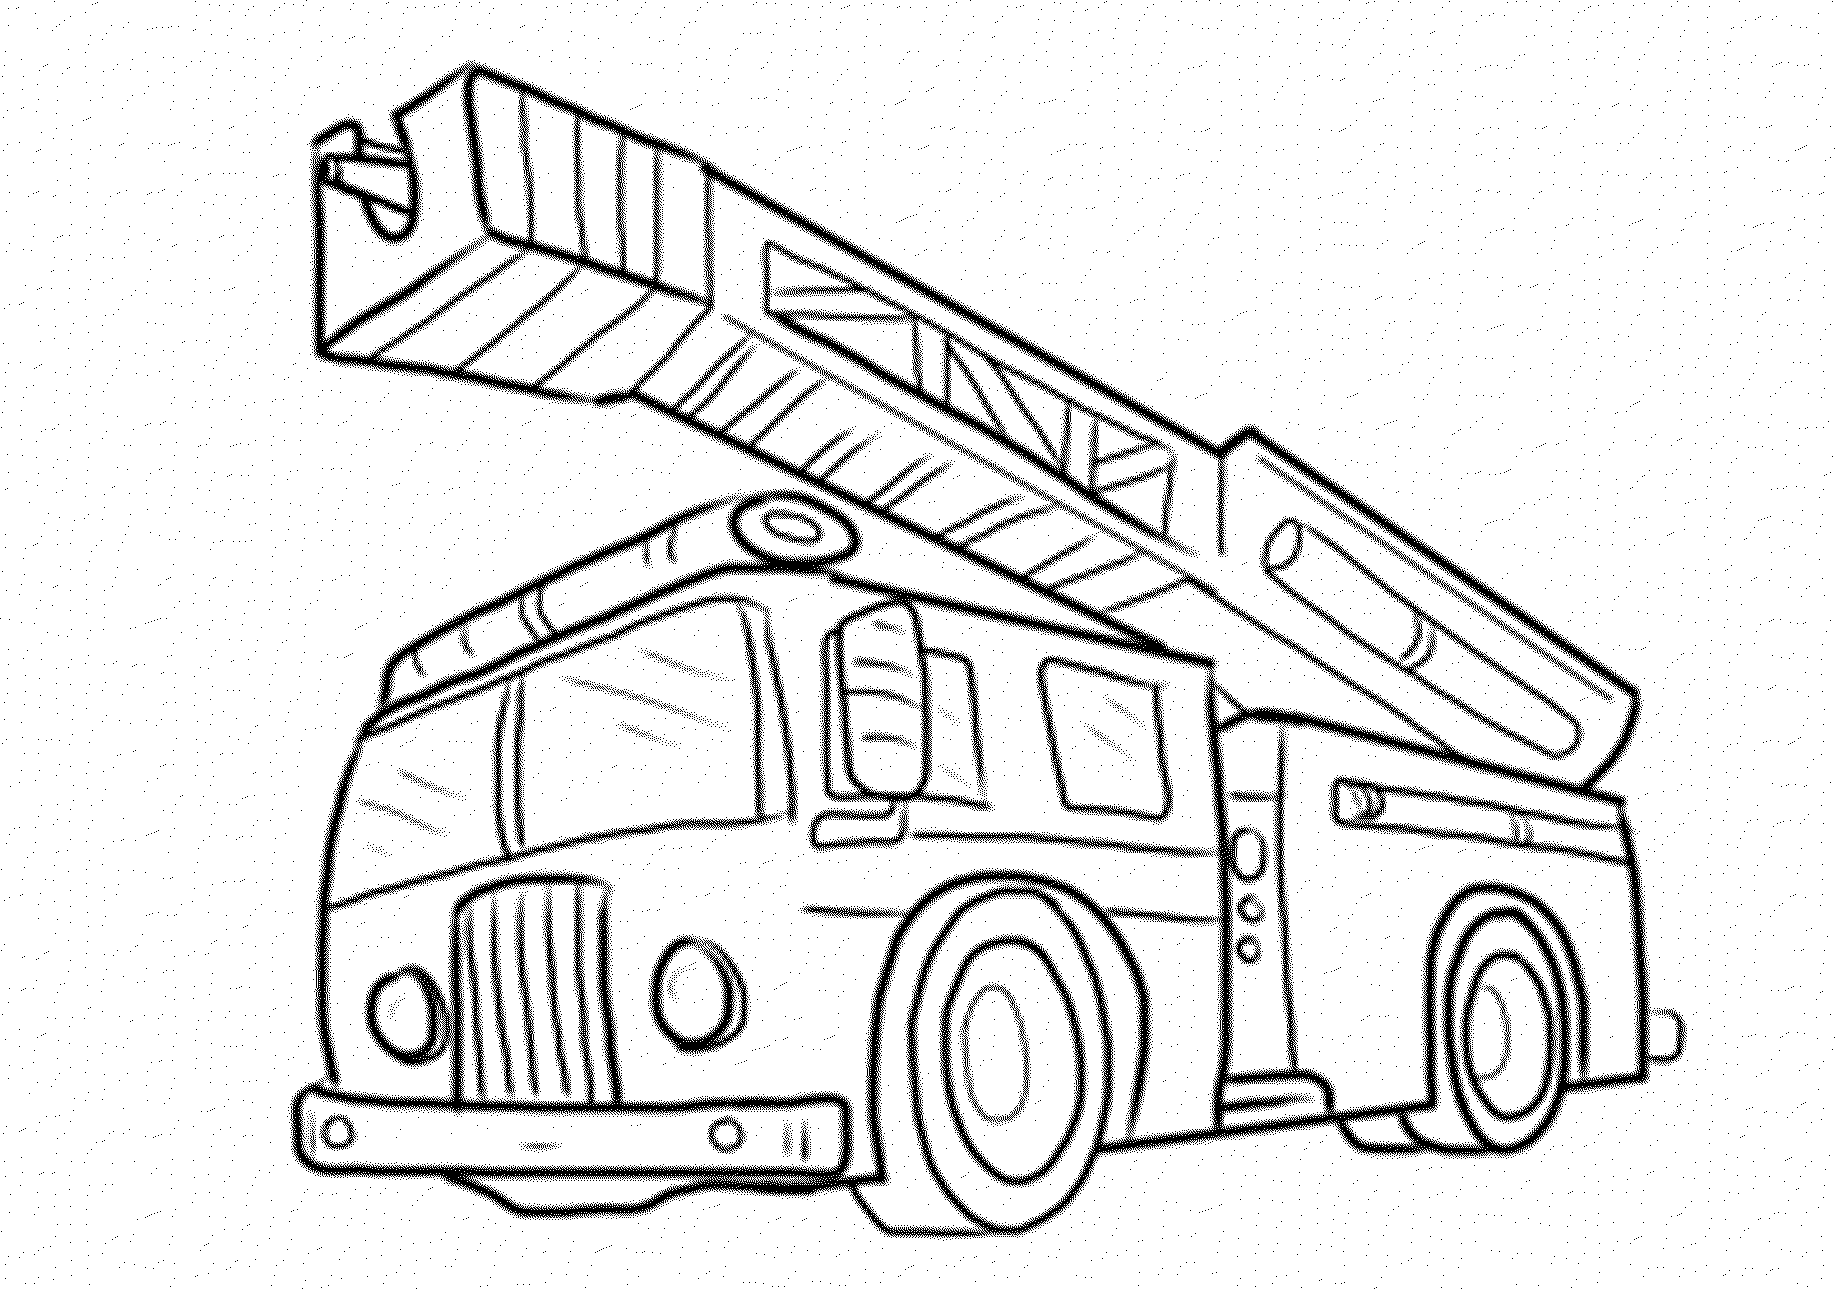 coloring page fire truck print download educational fire truck coloring pages truck fire coloring page